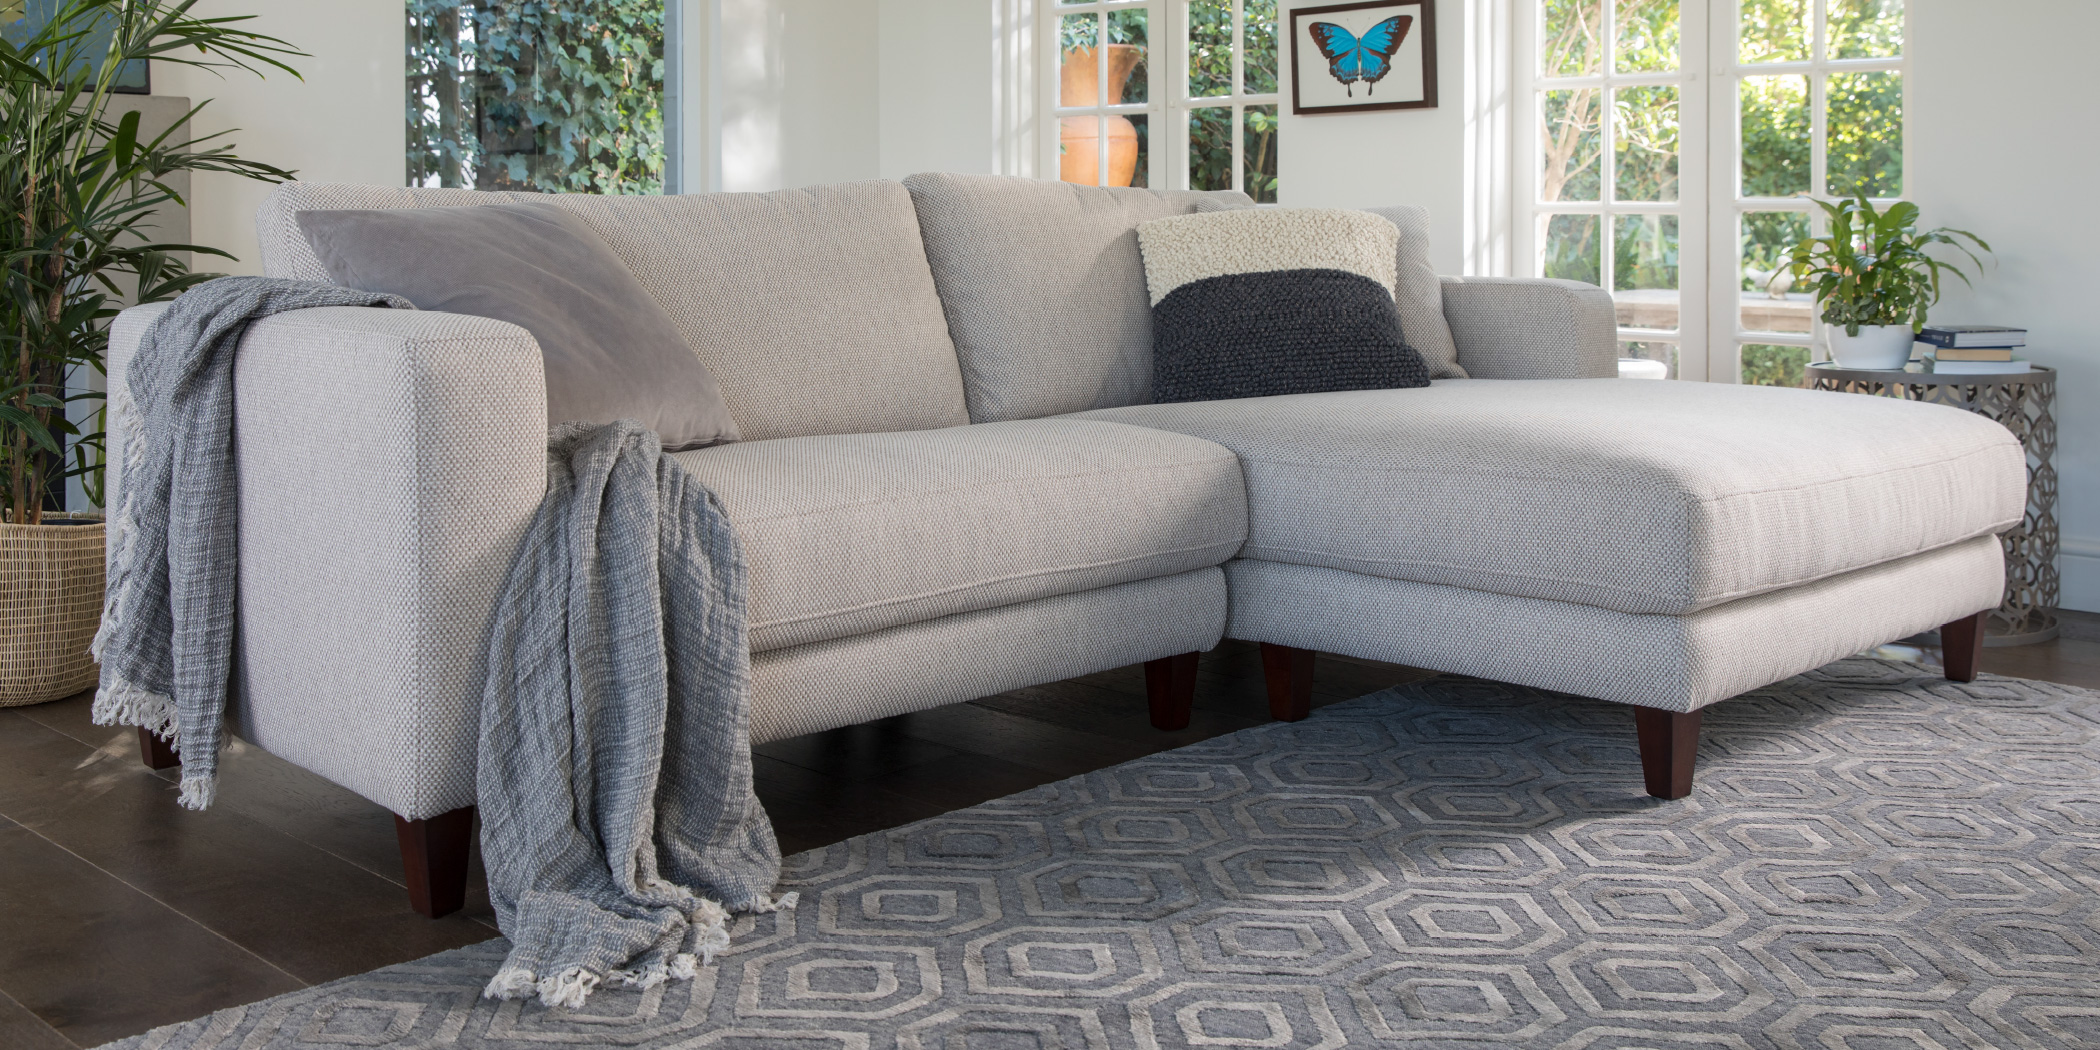 Zara Petite Sofa Plush Sofas Amp Furniture